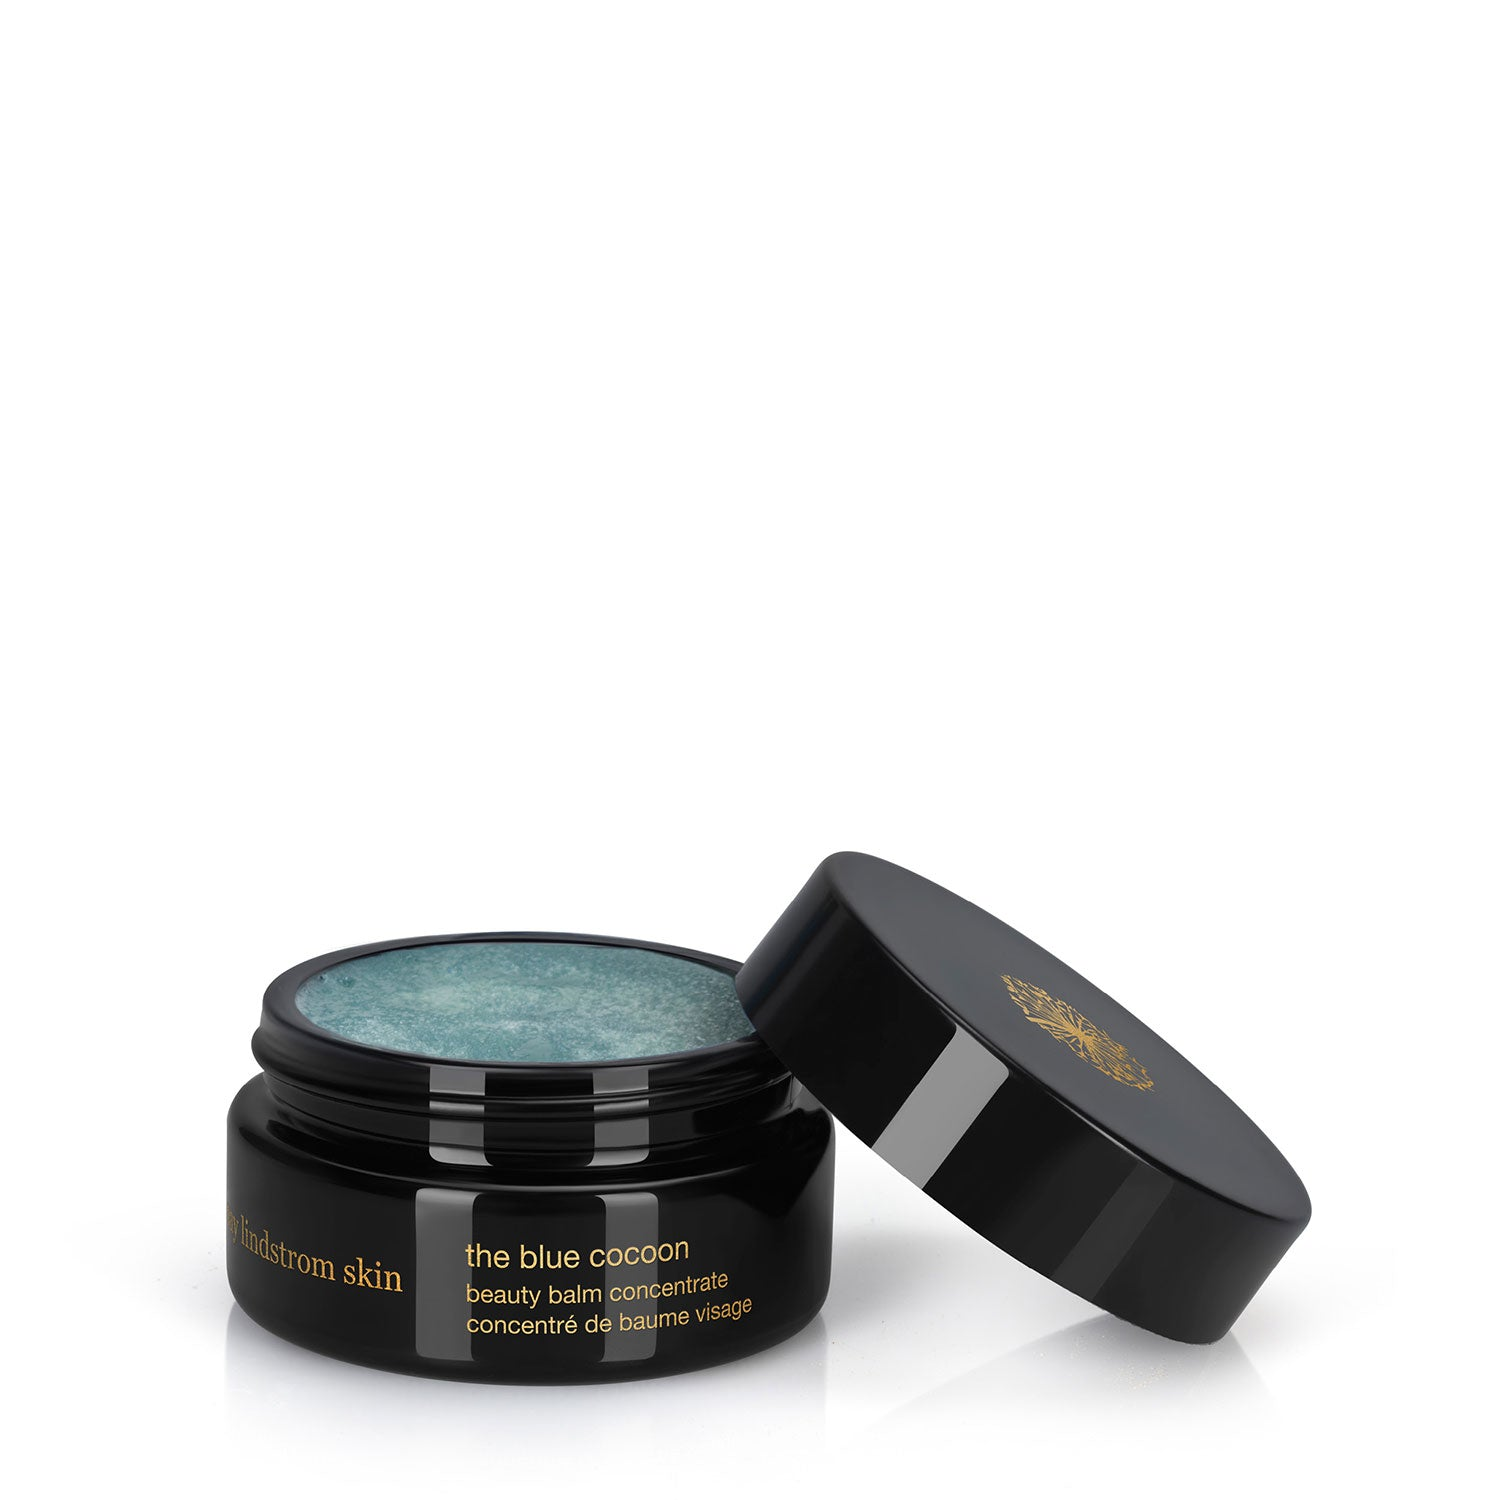 May Lindstrom Skin - The Blue Cocoon